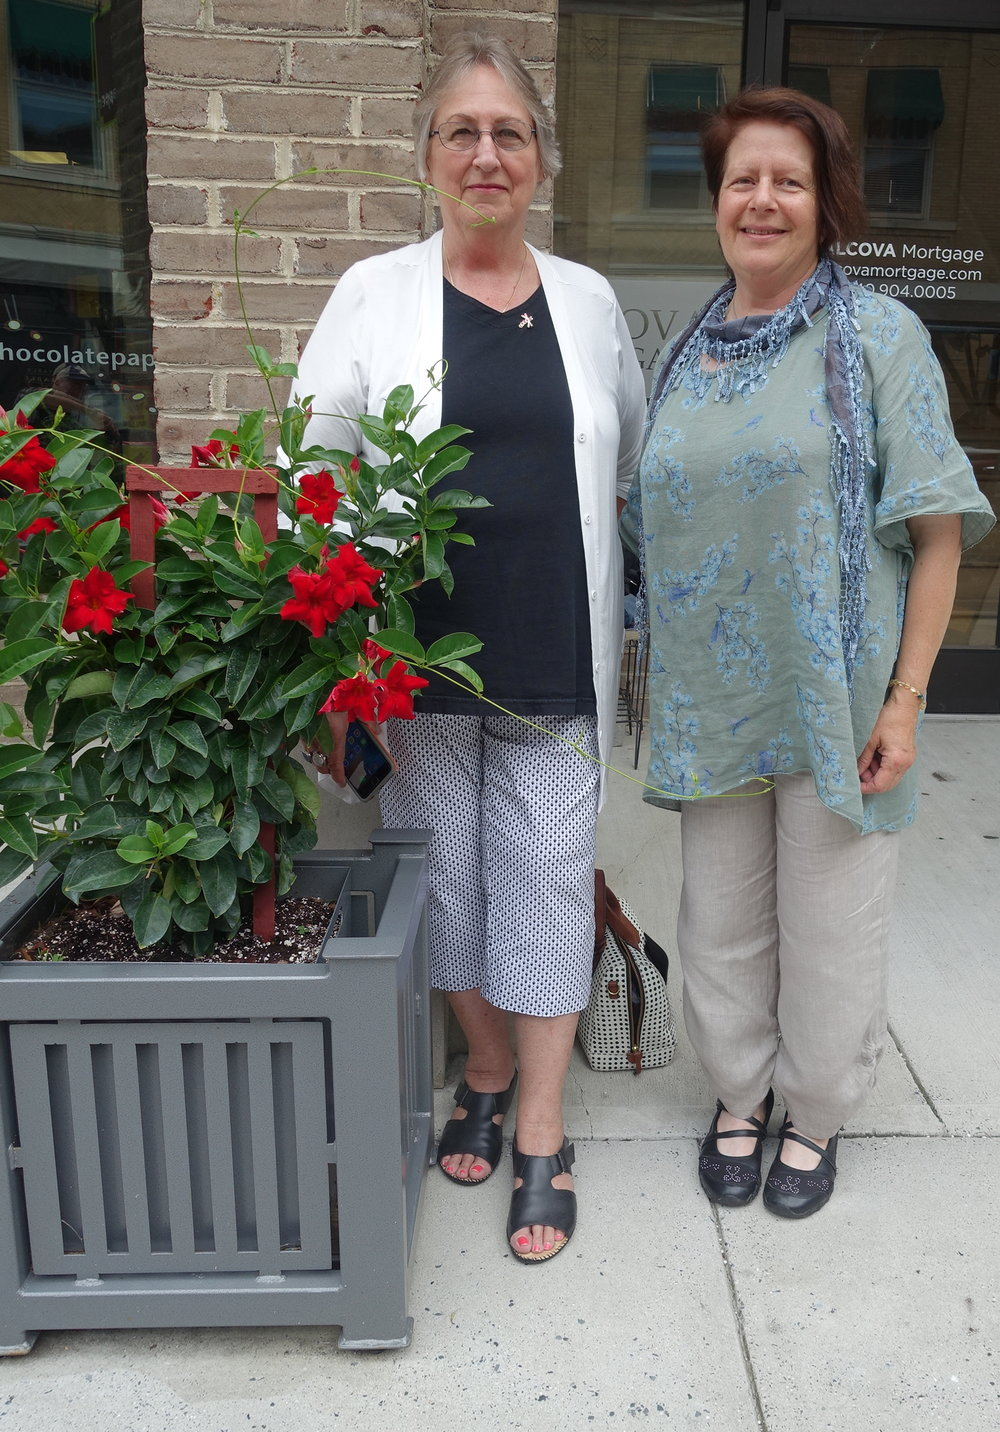 My friend and I in downtown Roanoke, Virginia